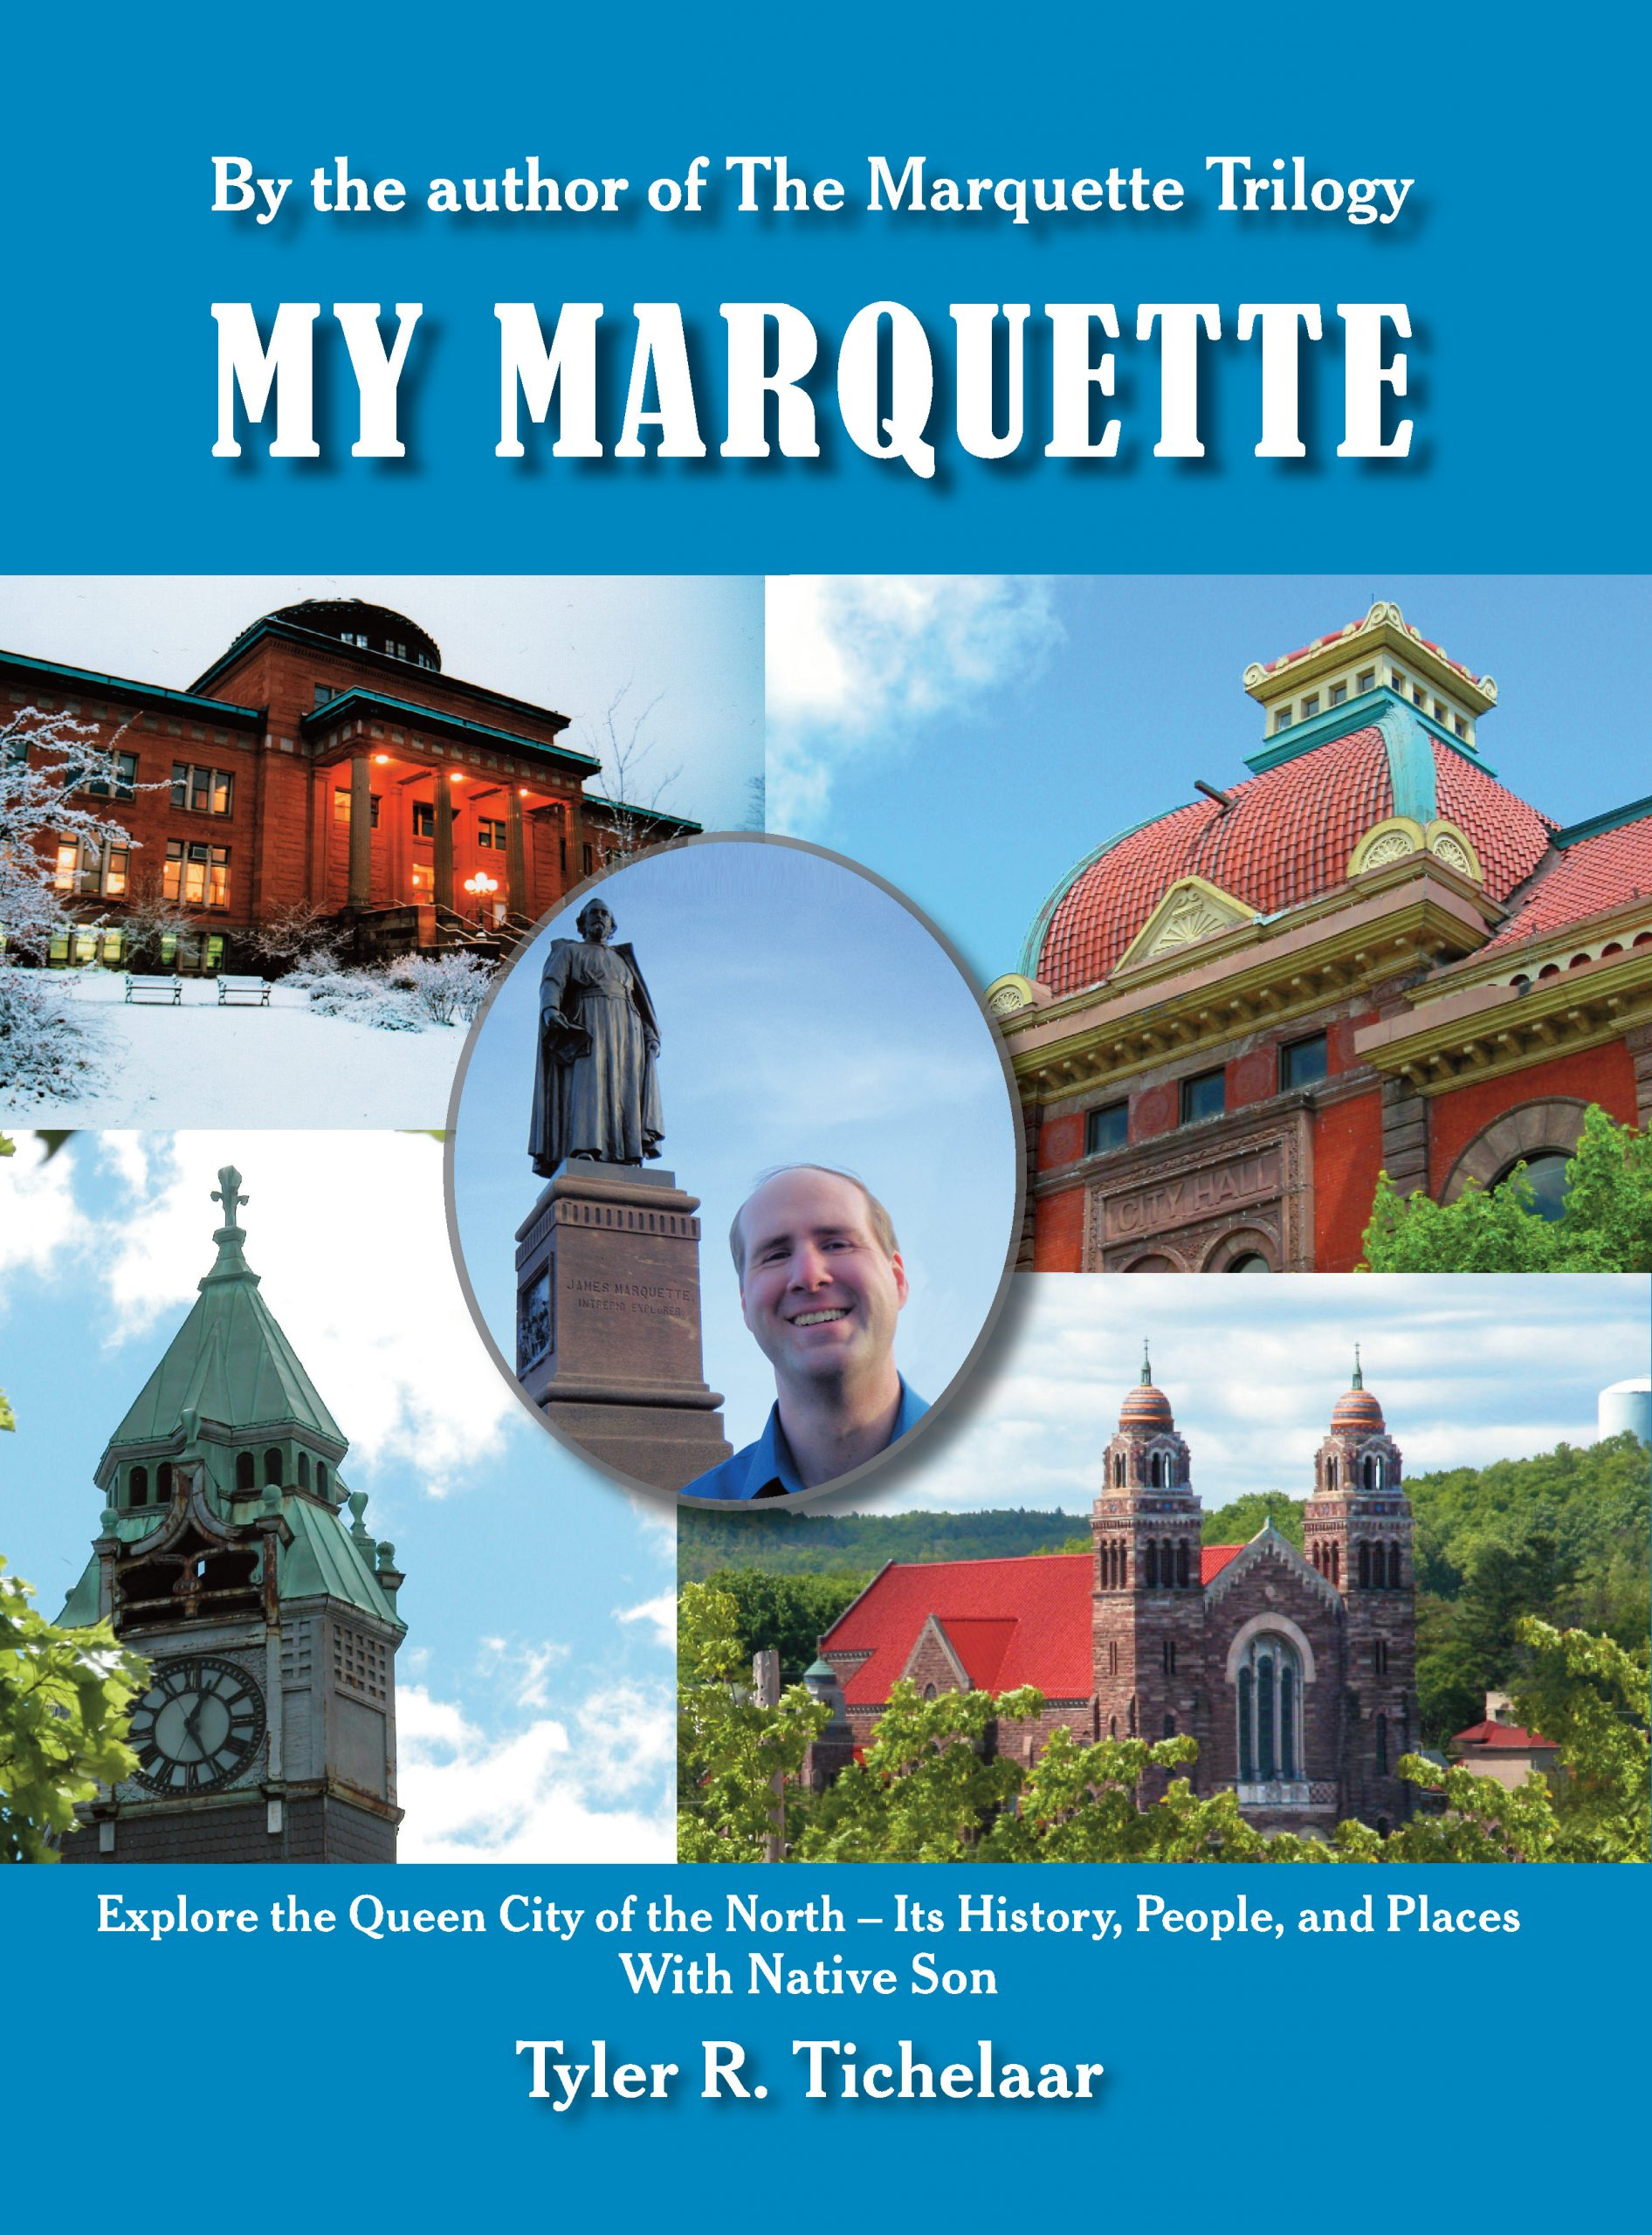 My Marquette: Explore the Queen City of the North Image